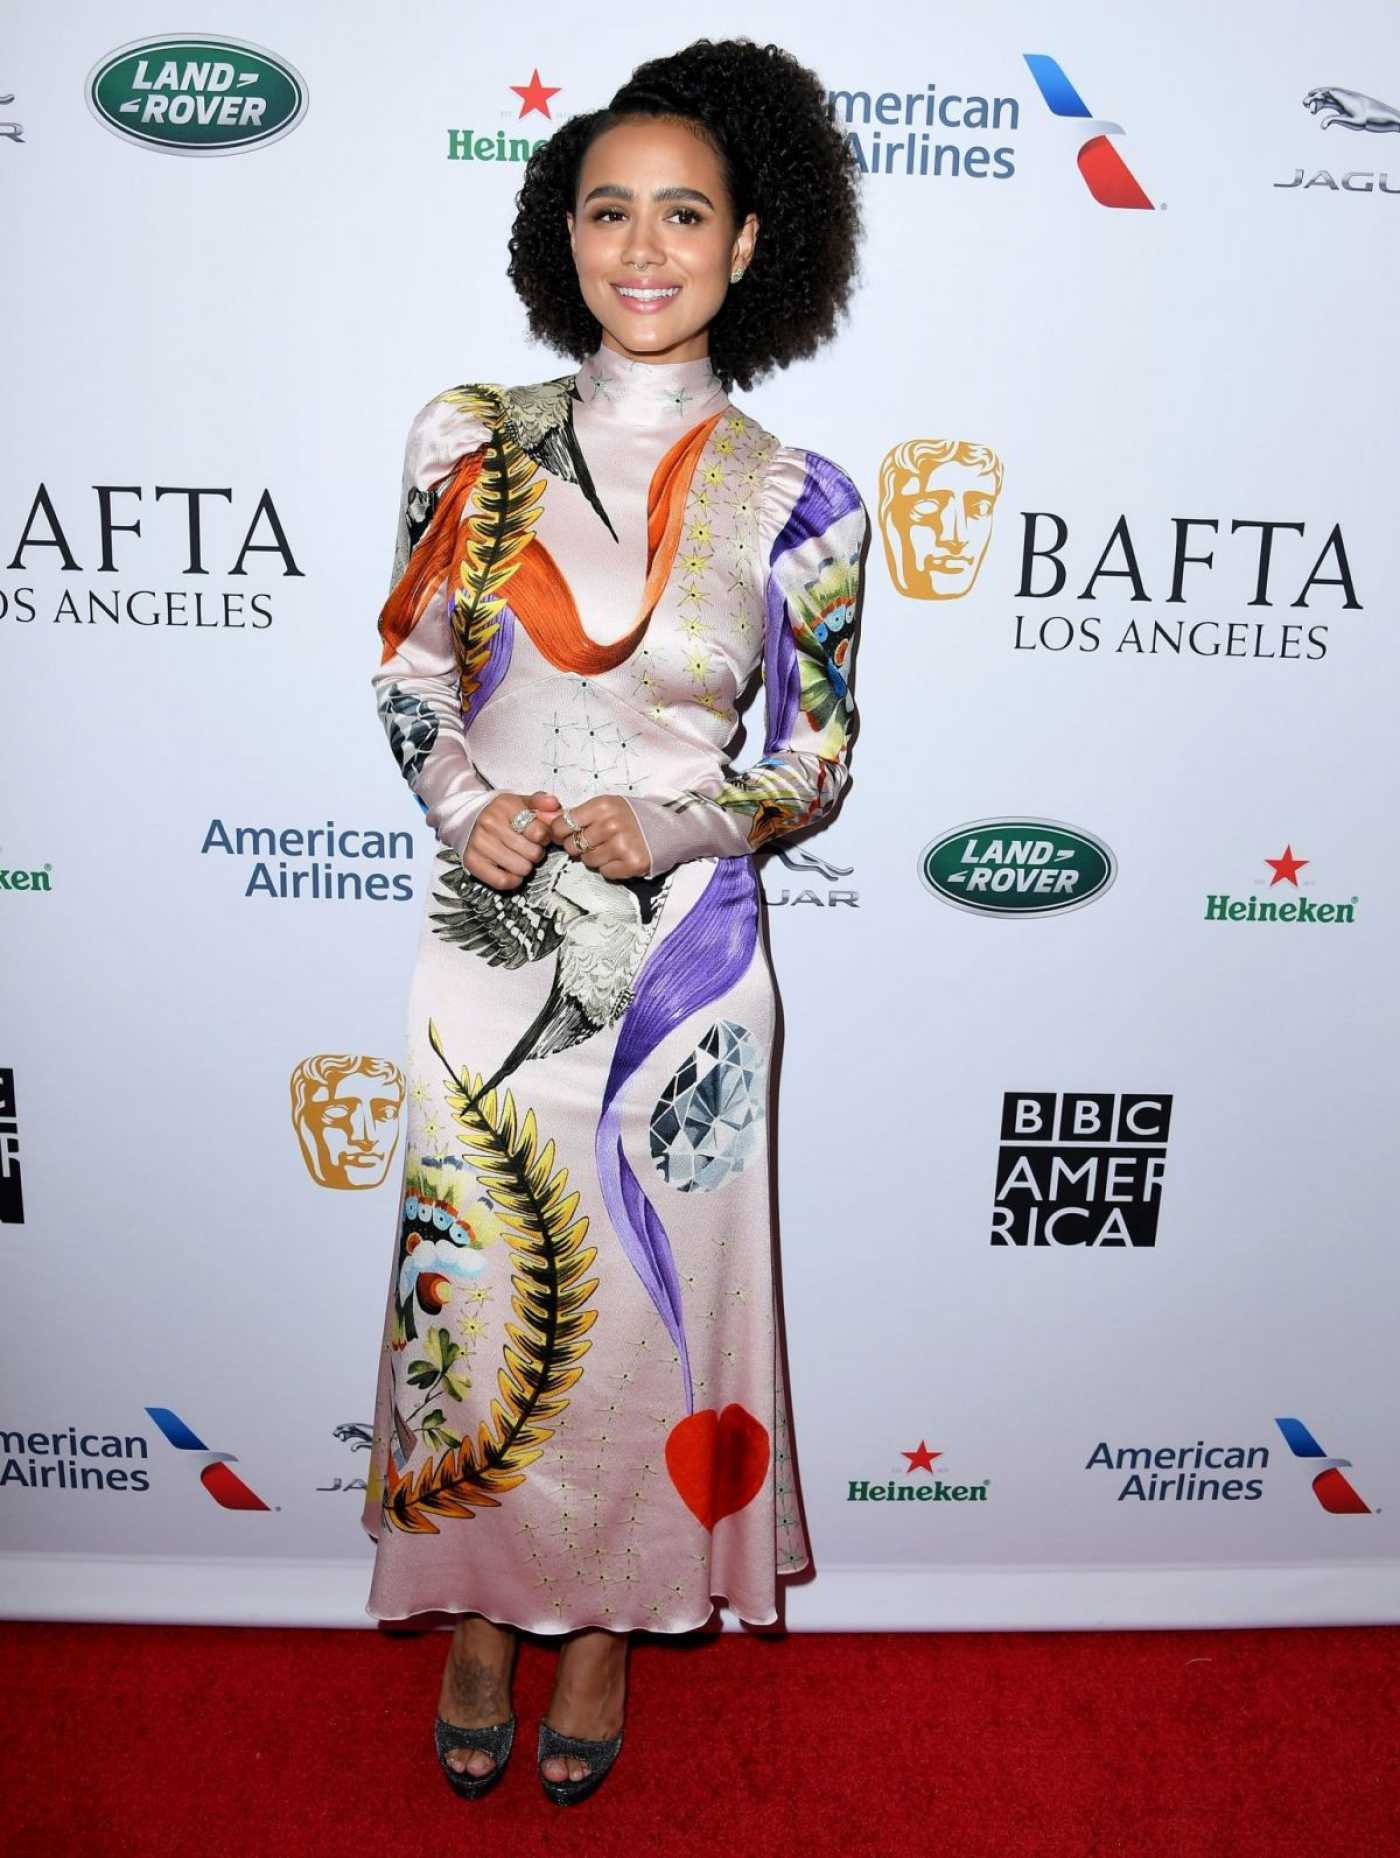 Nathalie Emmanuel Attends 2019 BAFTA Tea Party in Los Angeles 09/21/2019